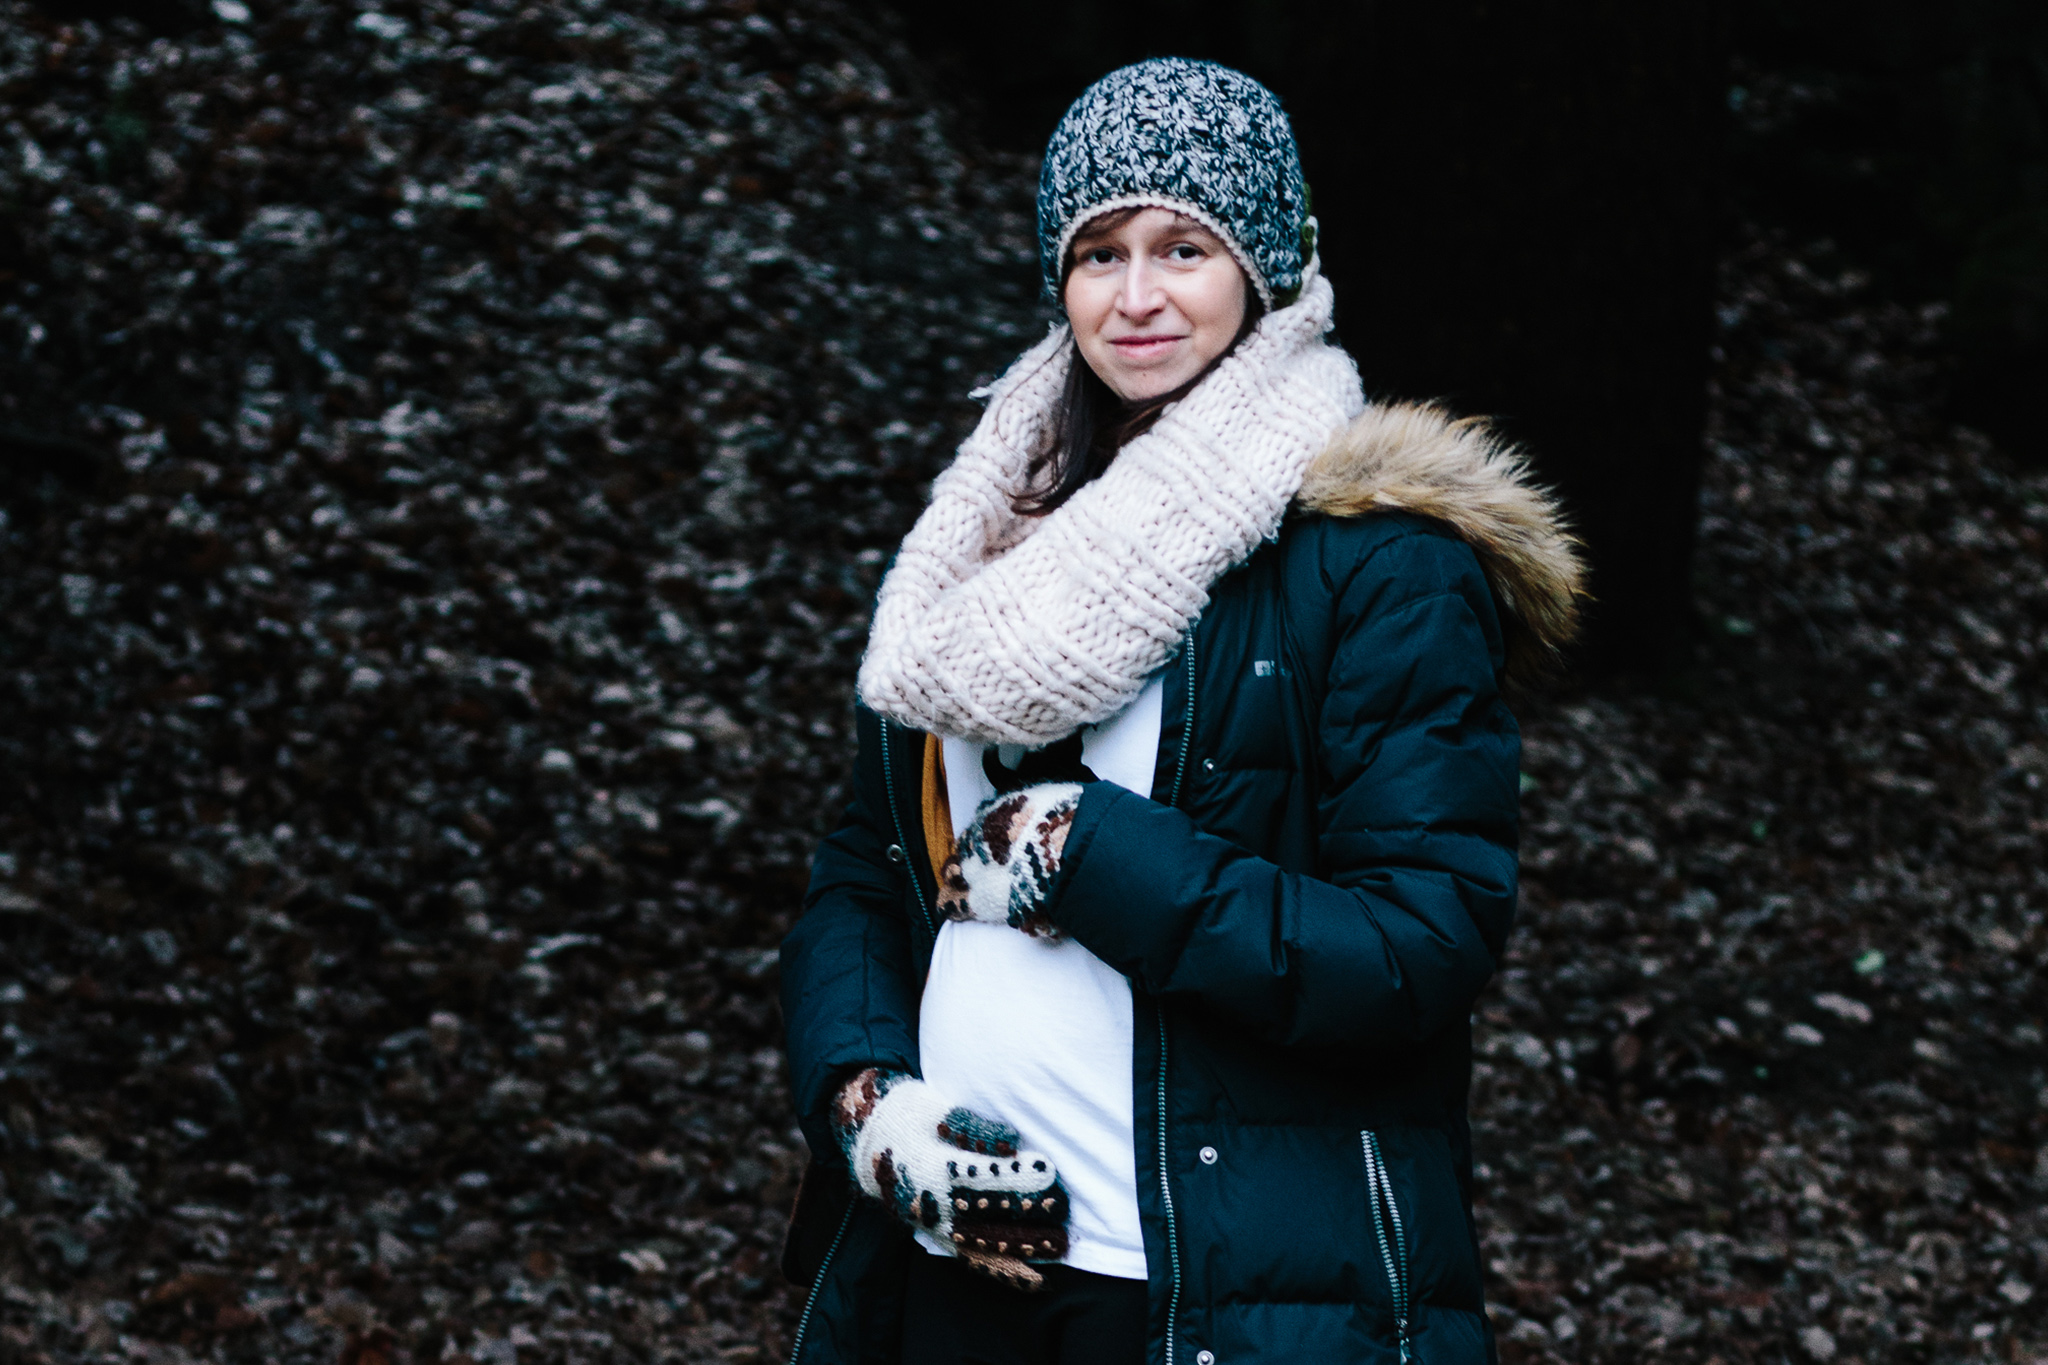 2/52 - 24 weeks pregnant and a winter walk at Williamson Park, Canon EOS-M